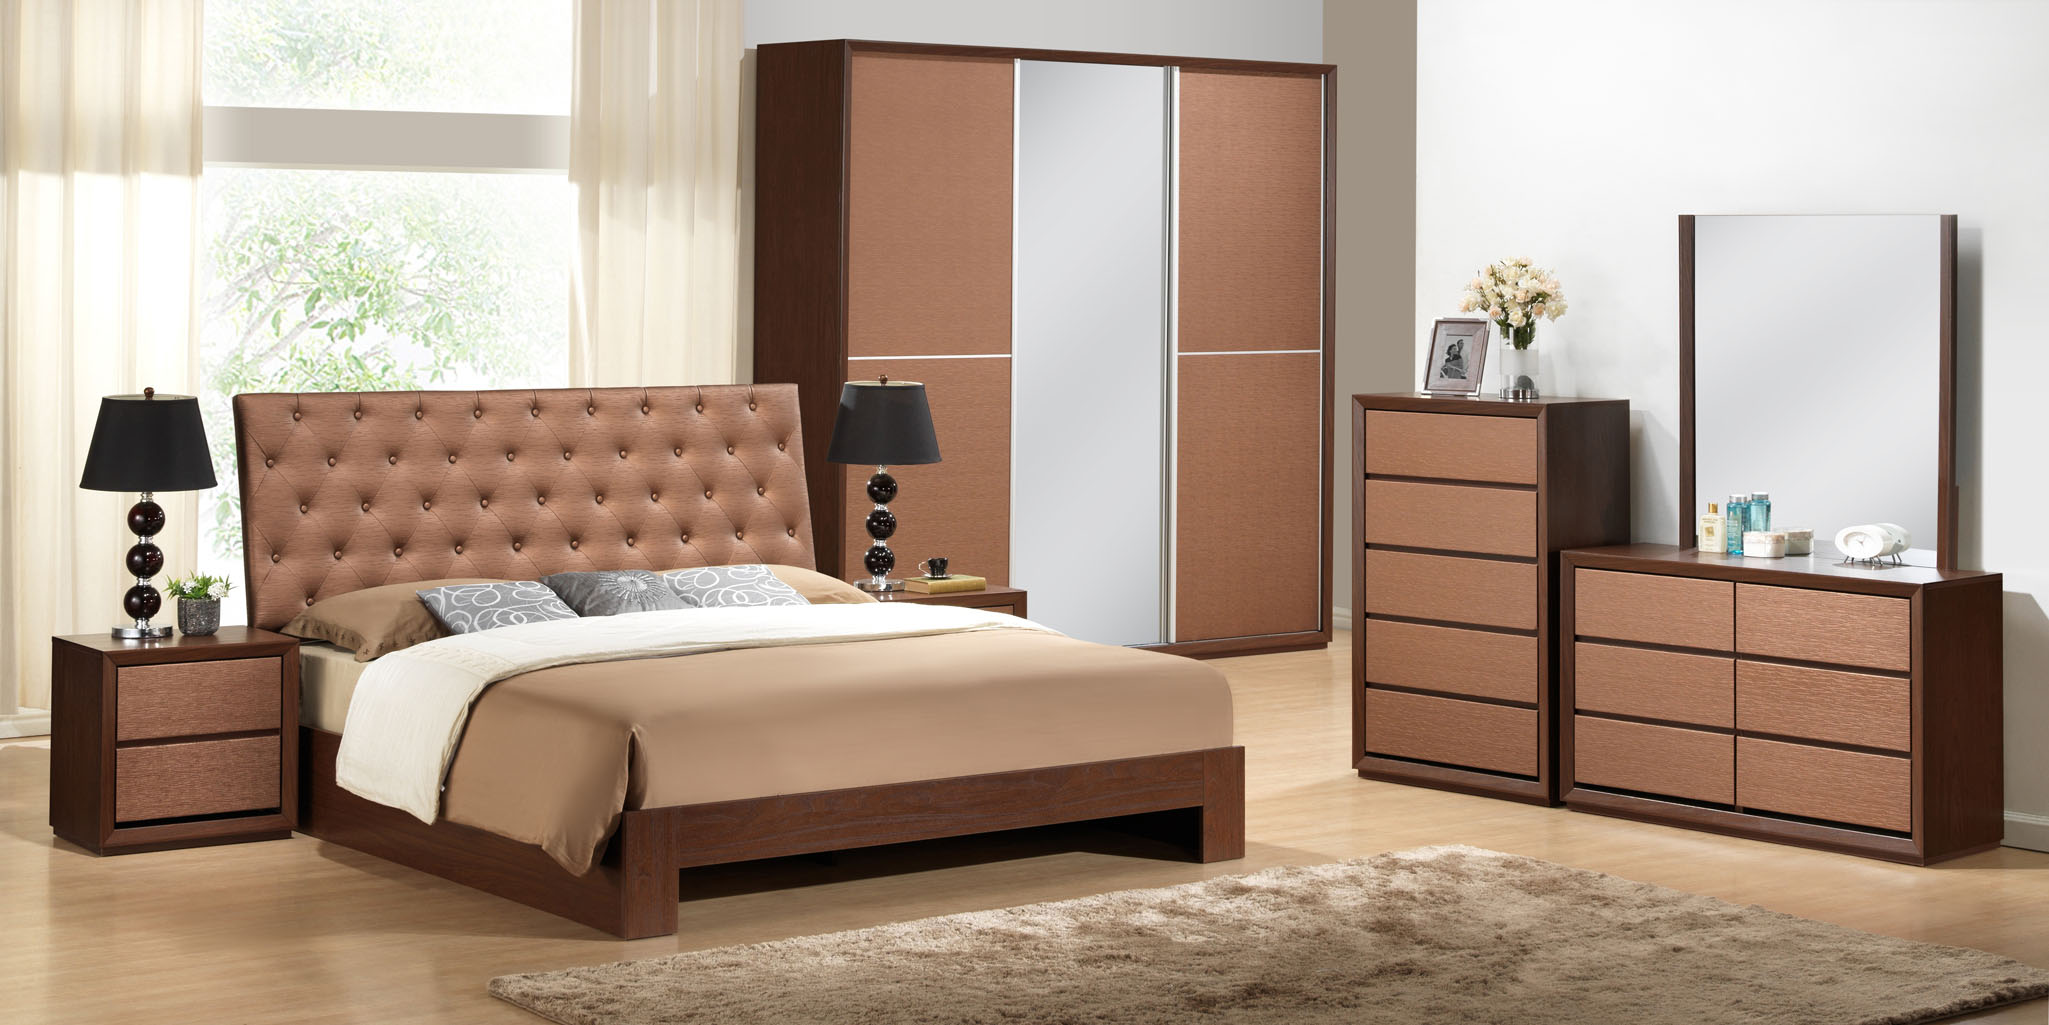 Quincy Bedroom Set - Fair Production Sdn Bhd